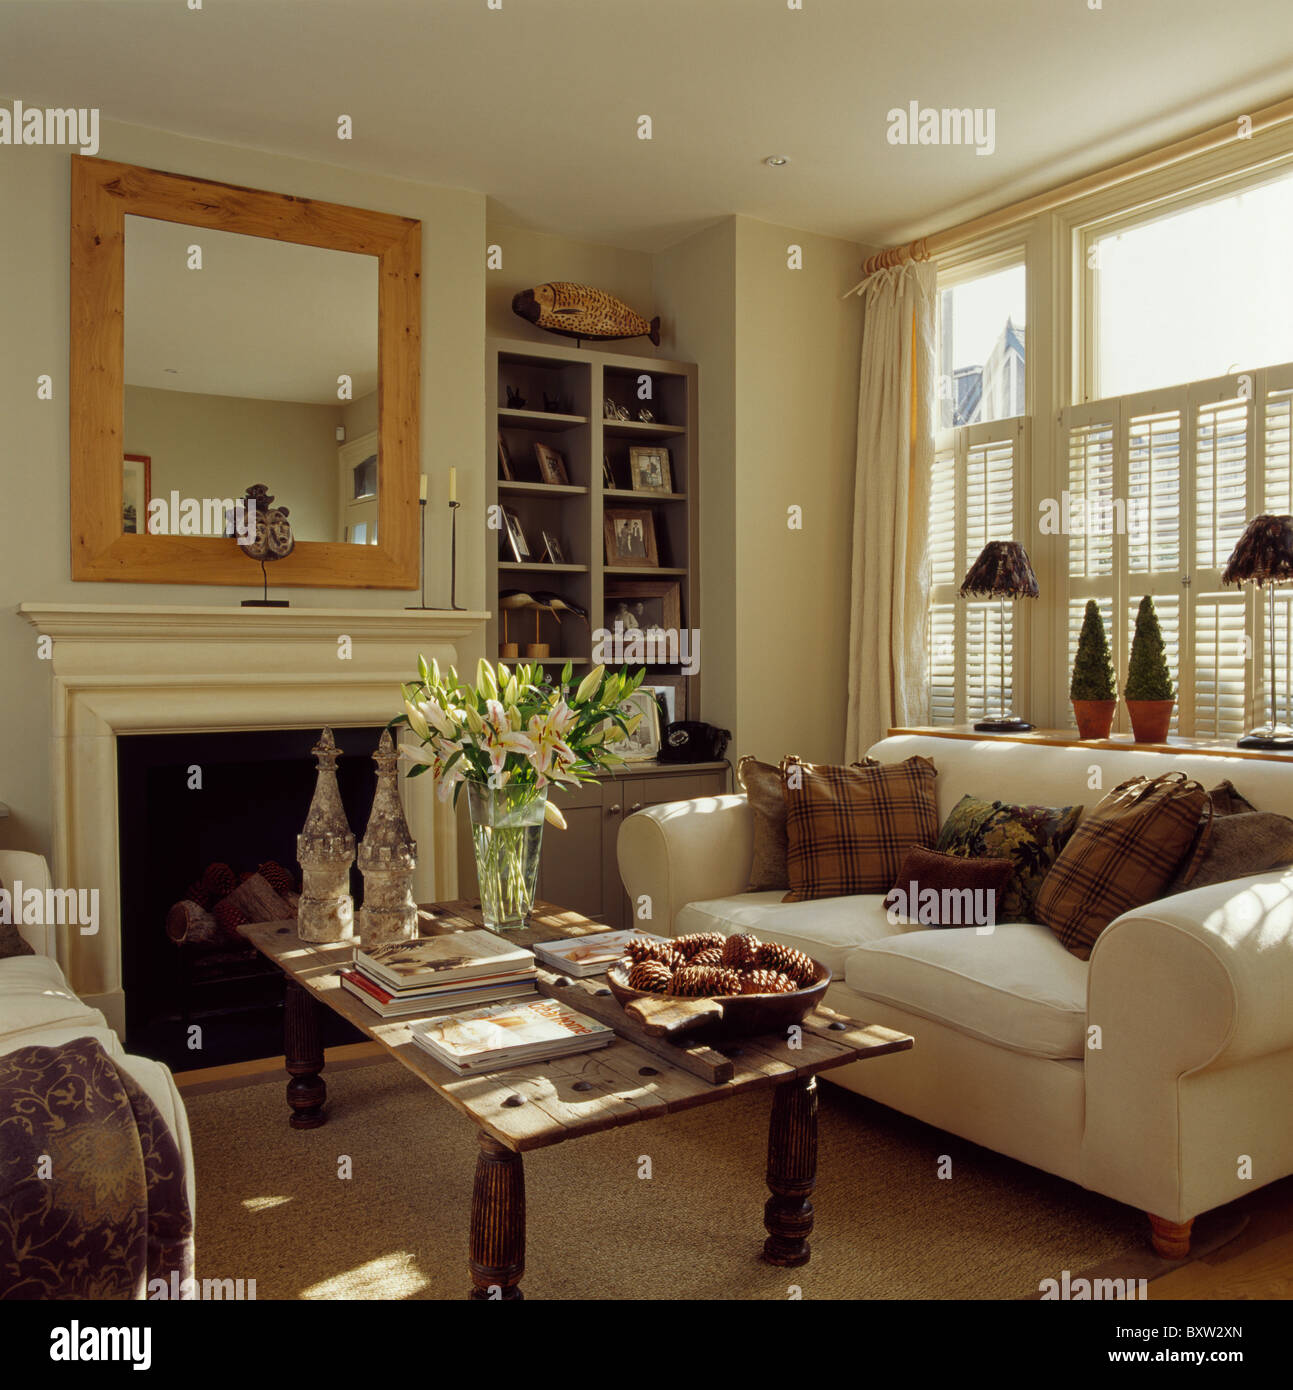 Brown Cushions On Cream Sofa Below Window With Cream Plantation Shutters In  Living Room With Wood Framed Mirror Above Fireplace